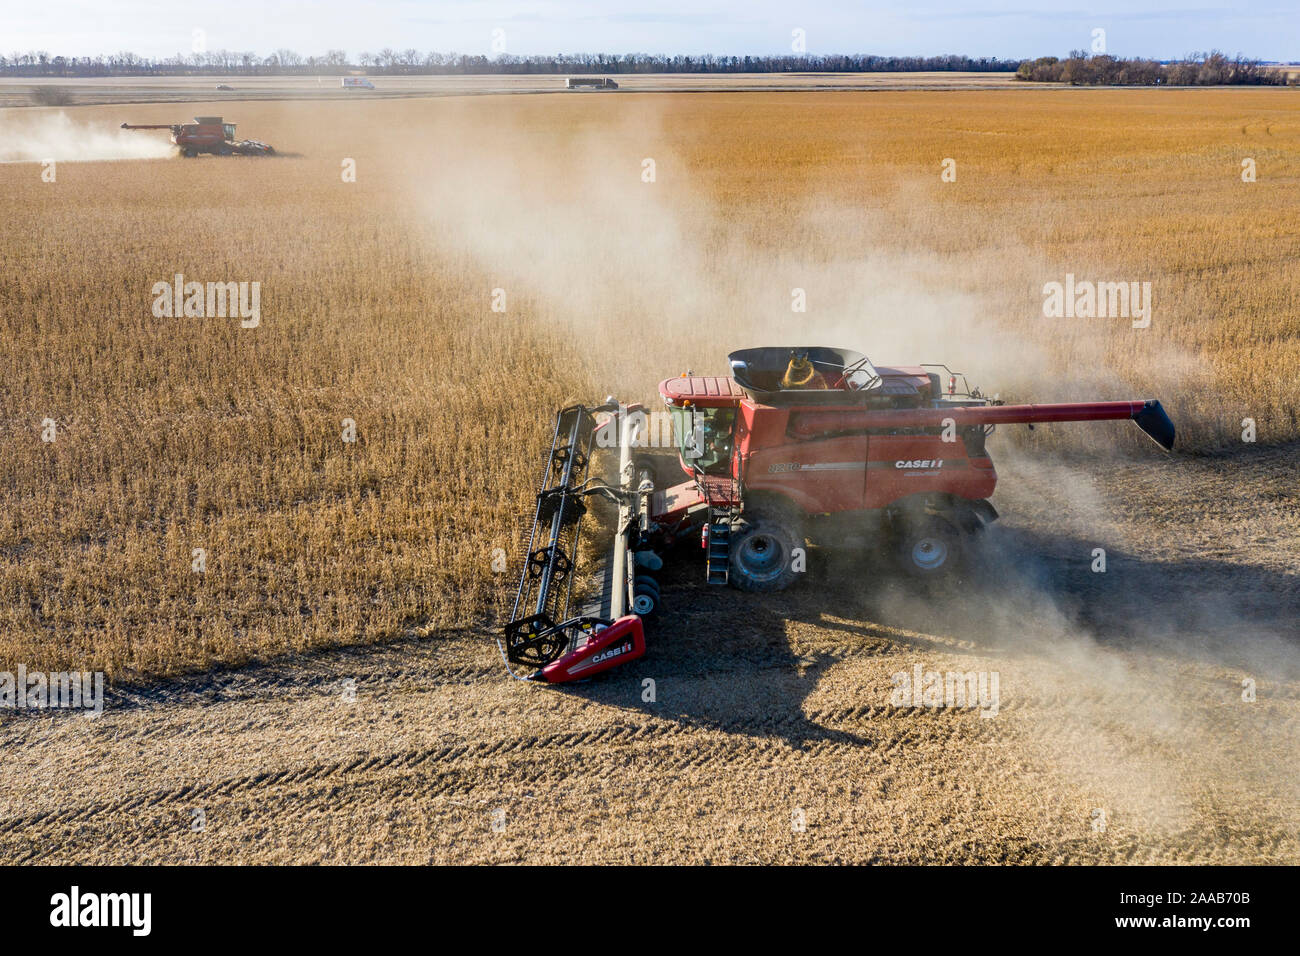 Valley City, North Dakota - Combines harvest soybeans at the Noeske Seed Farm. The soybeans will be sold through seed companies for next year's crop. Stock Photo